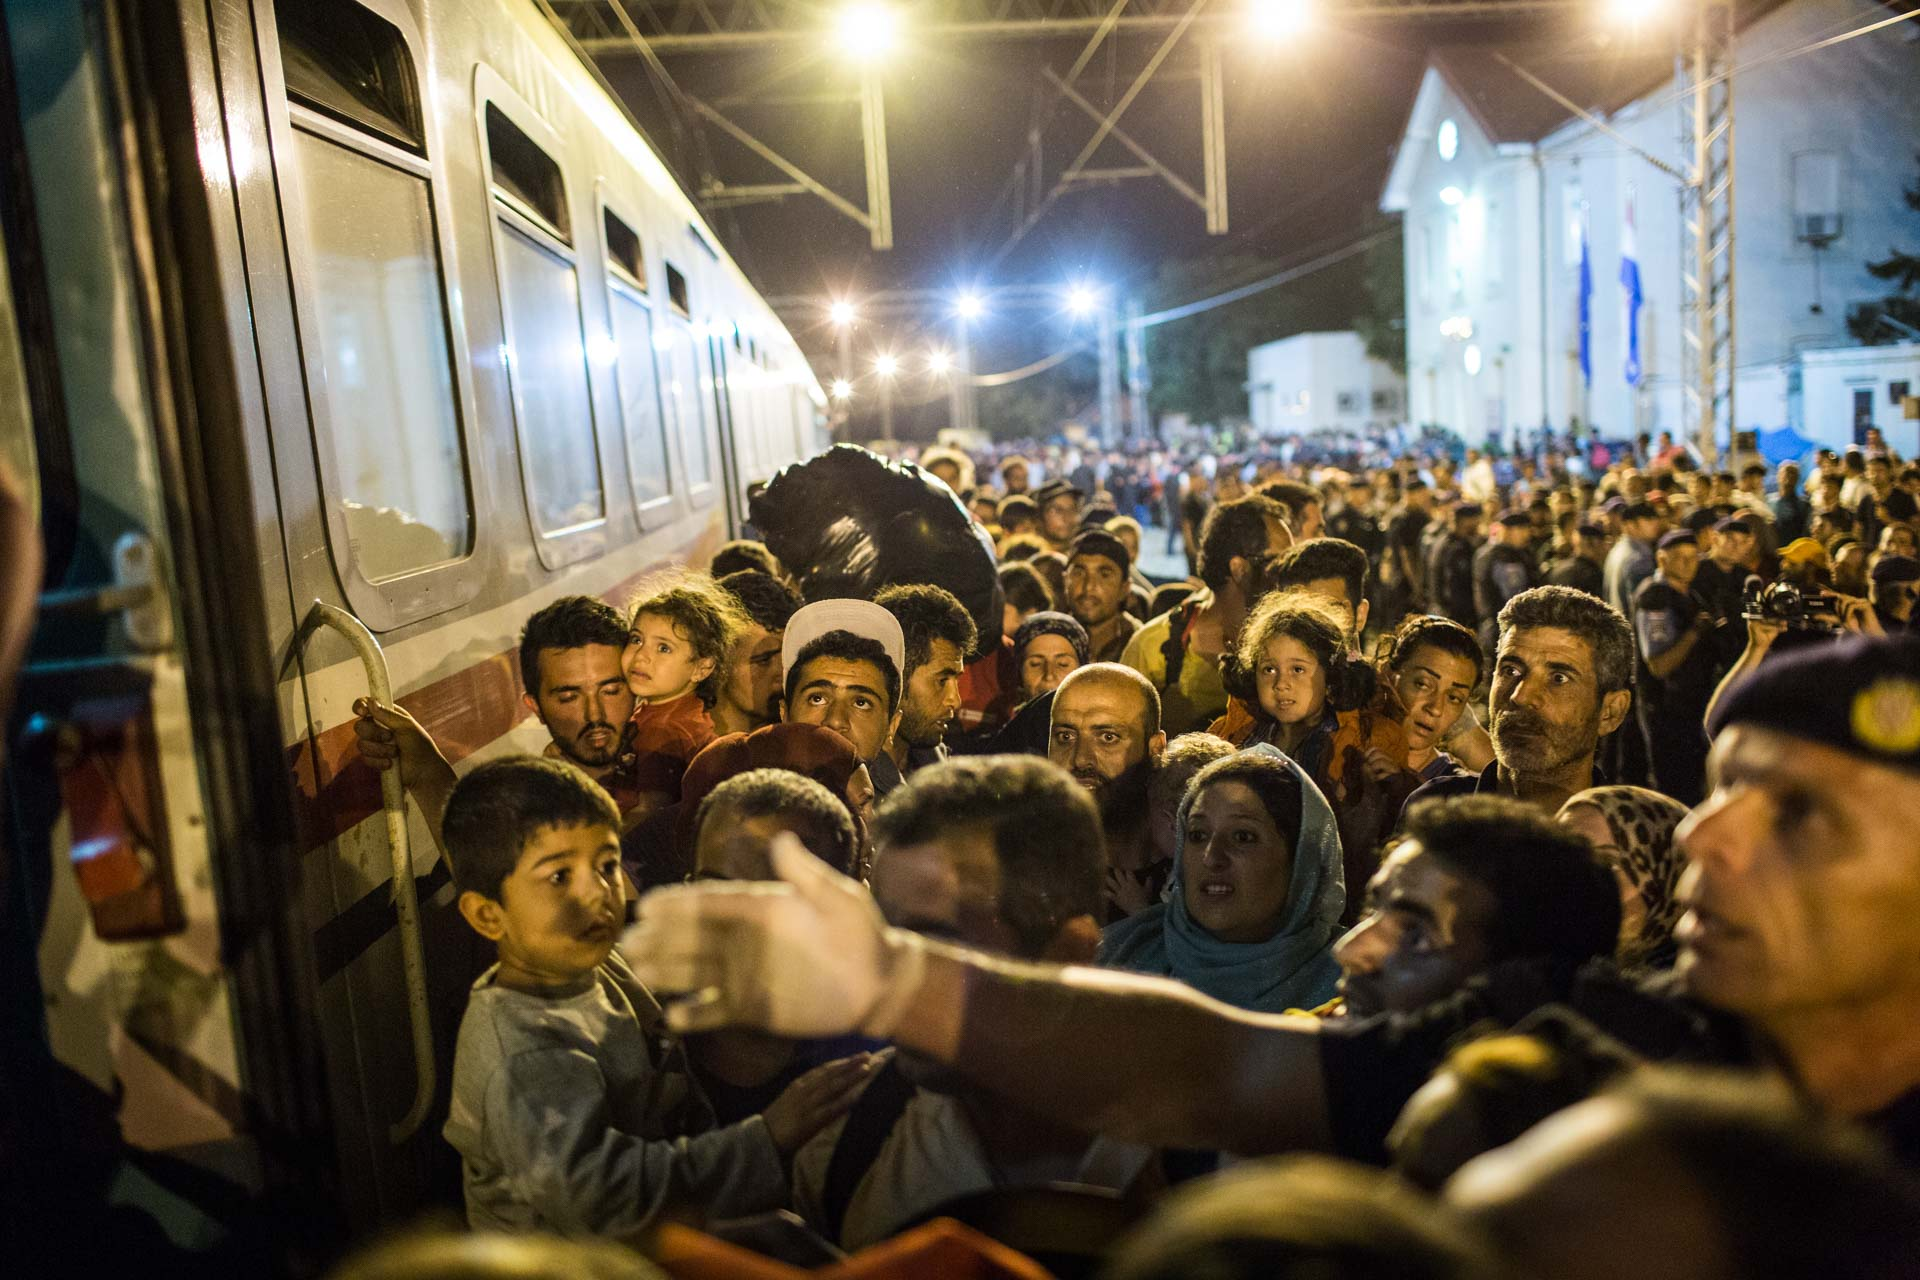 Within the first few days, Croatian authorities were overwhelmed with the massive influx of thousands of people coming to Tovarnik every day. Despite the pressure, they never used force on the refugees like many other Balkan countries did.